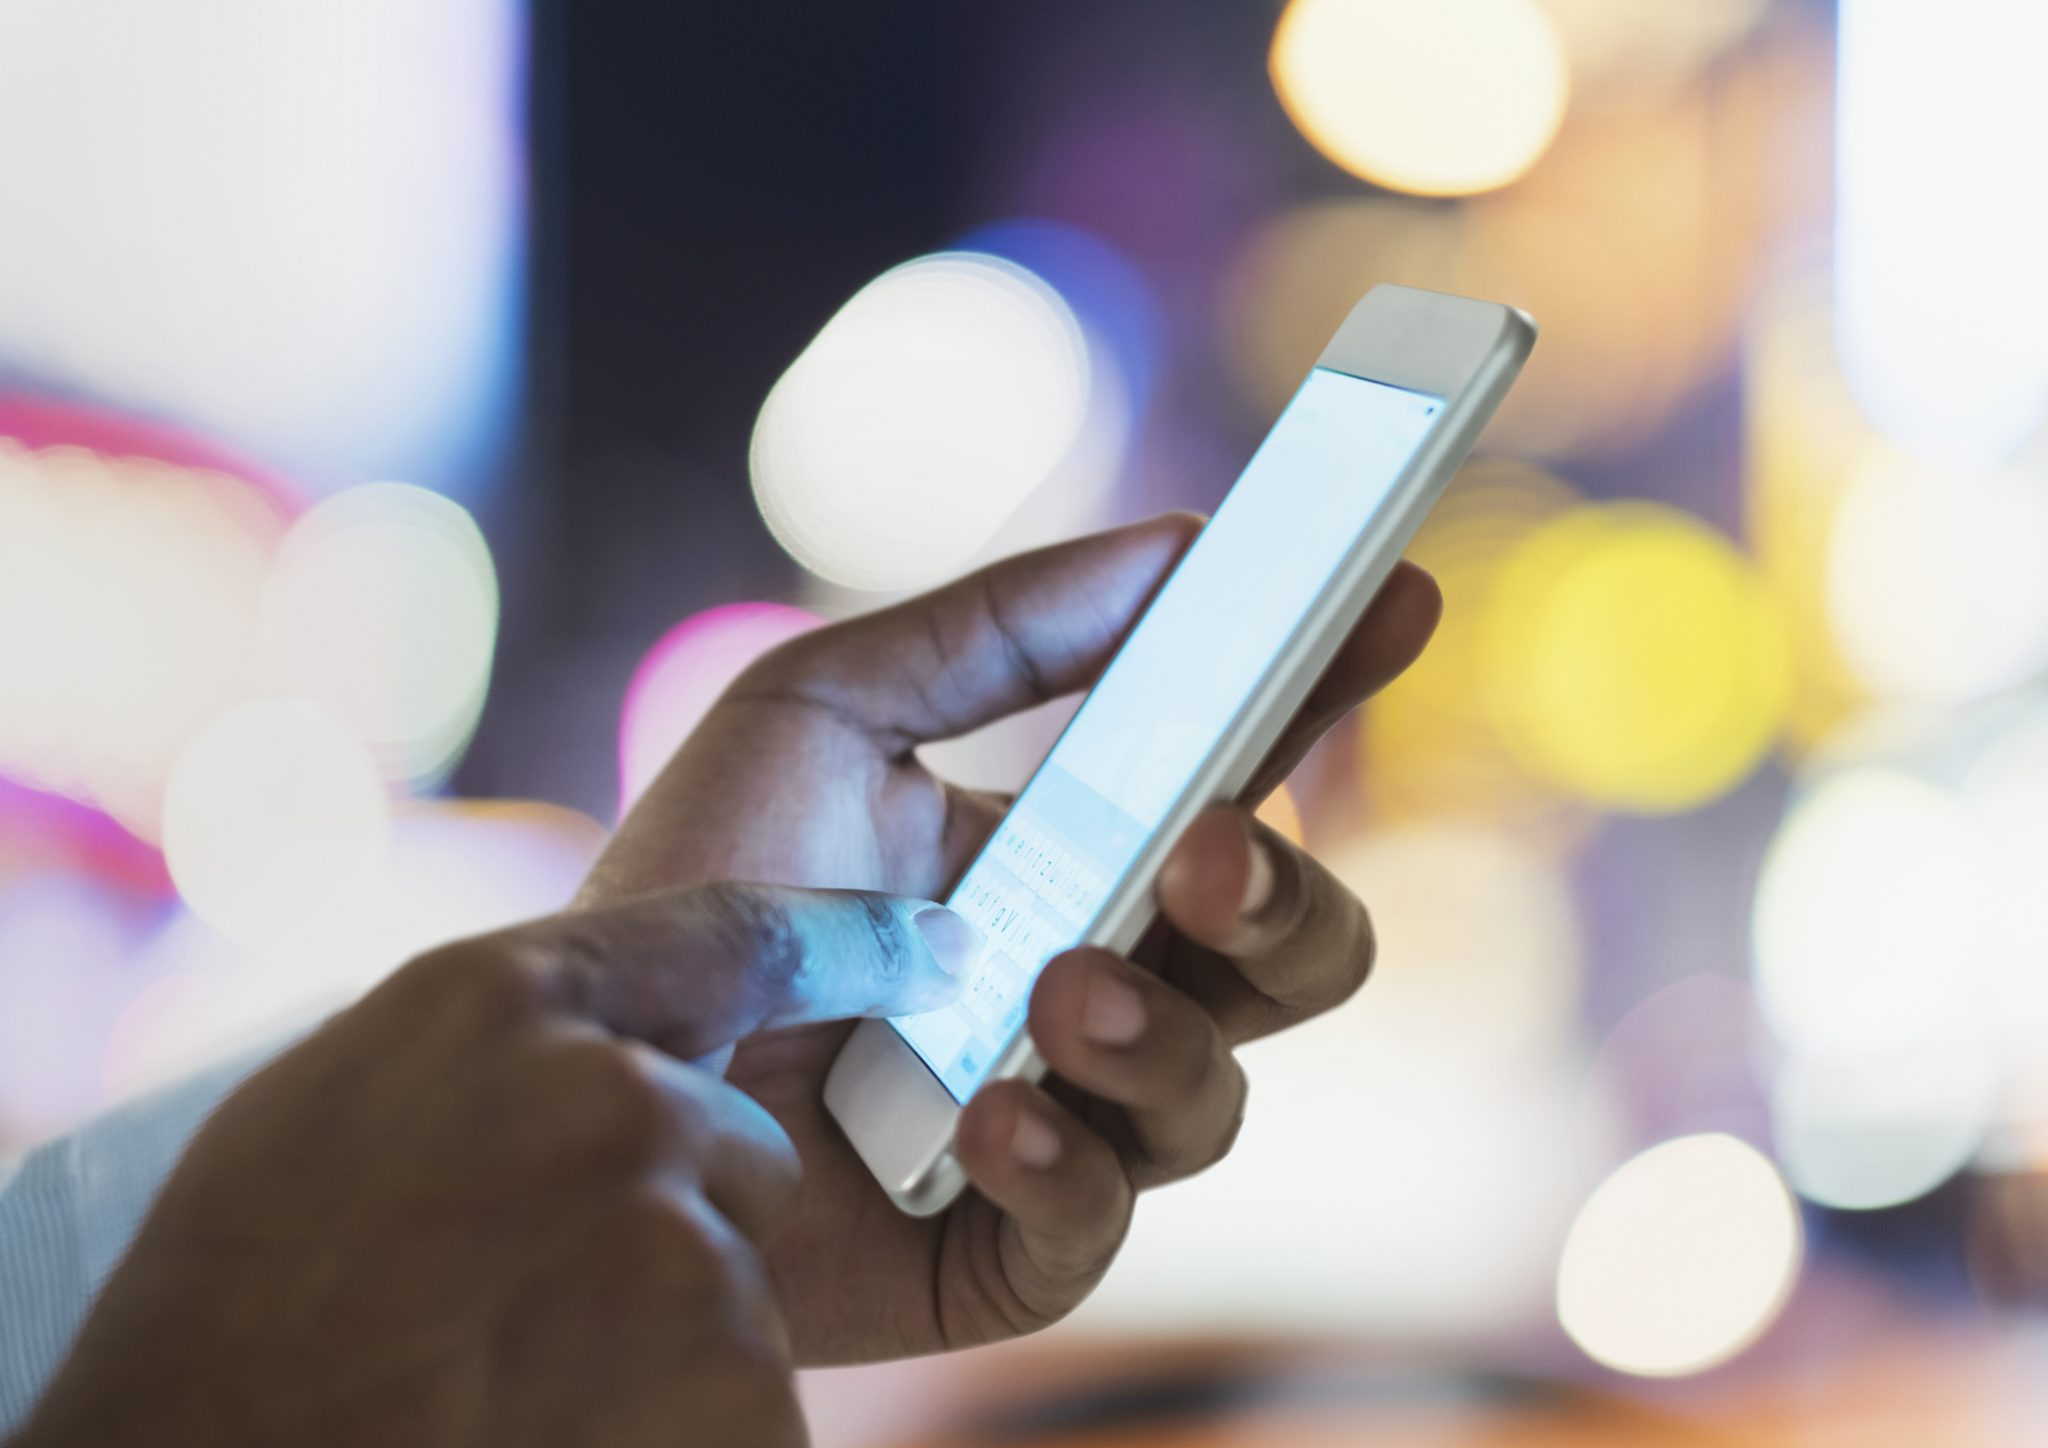 Person using mobile phone at night in city, close up